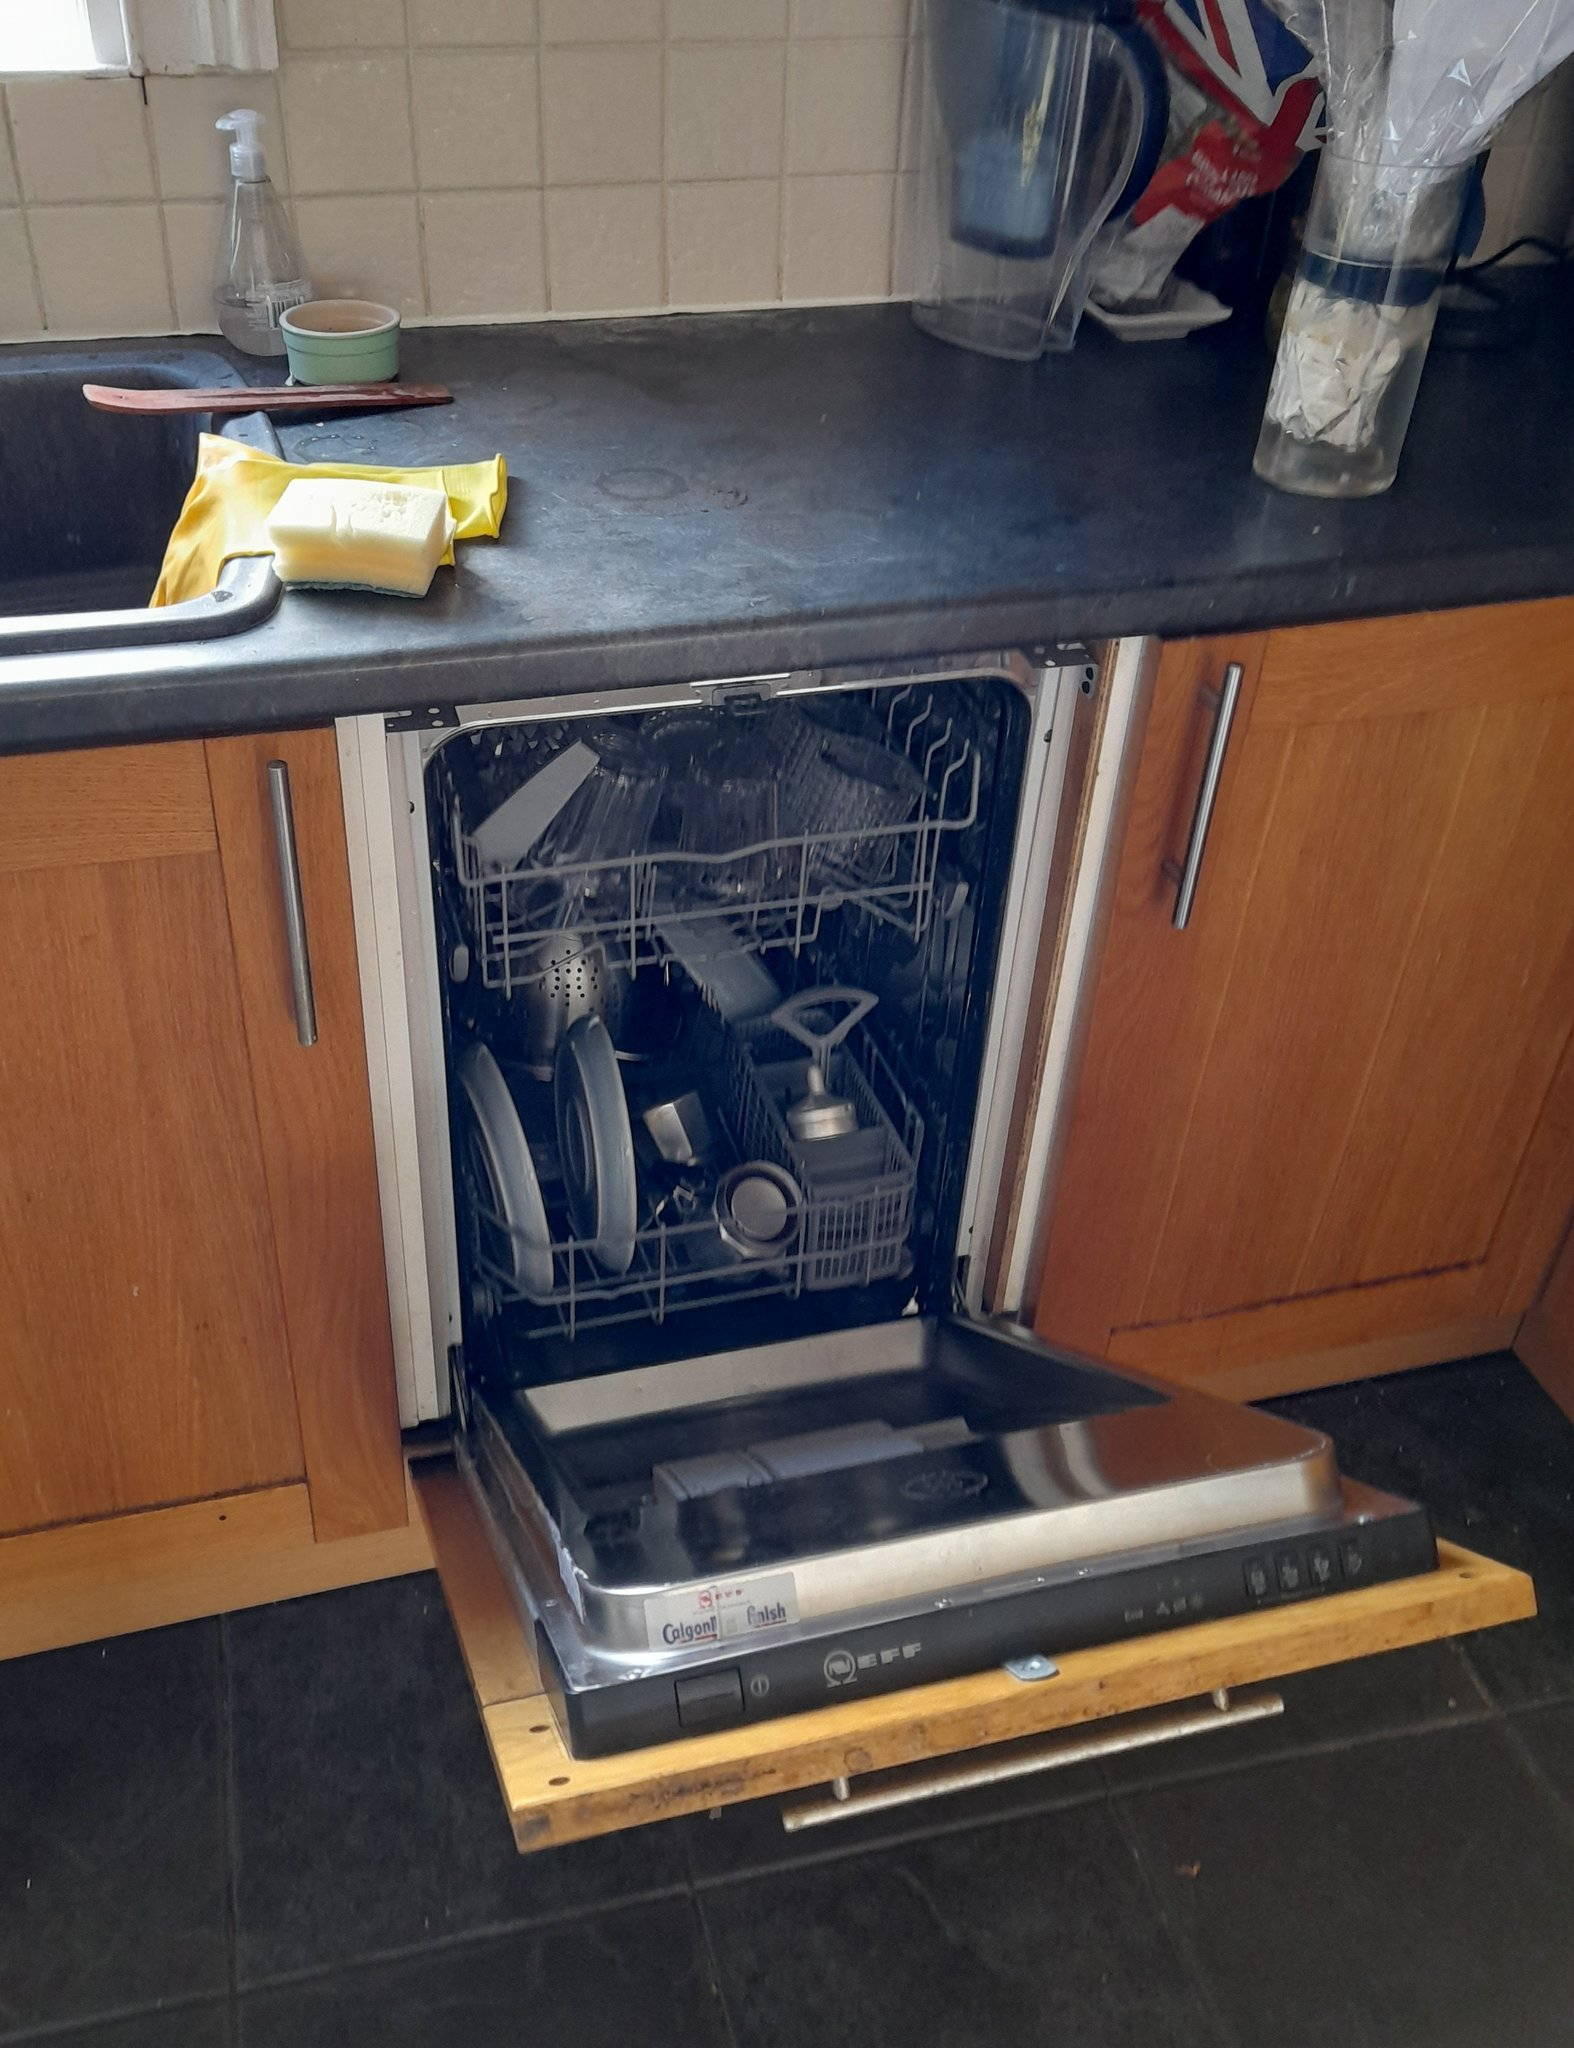 Twitter User 'shocked' to Discover Hidden Dishwasher Years After Moving